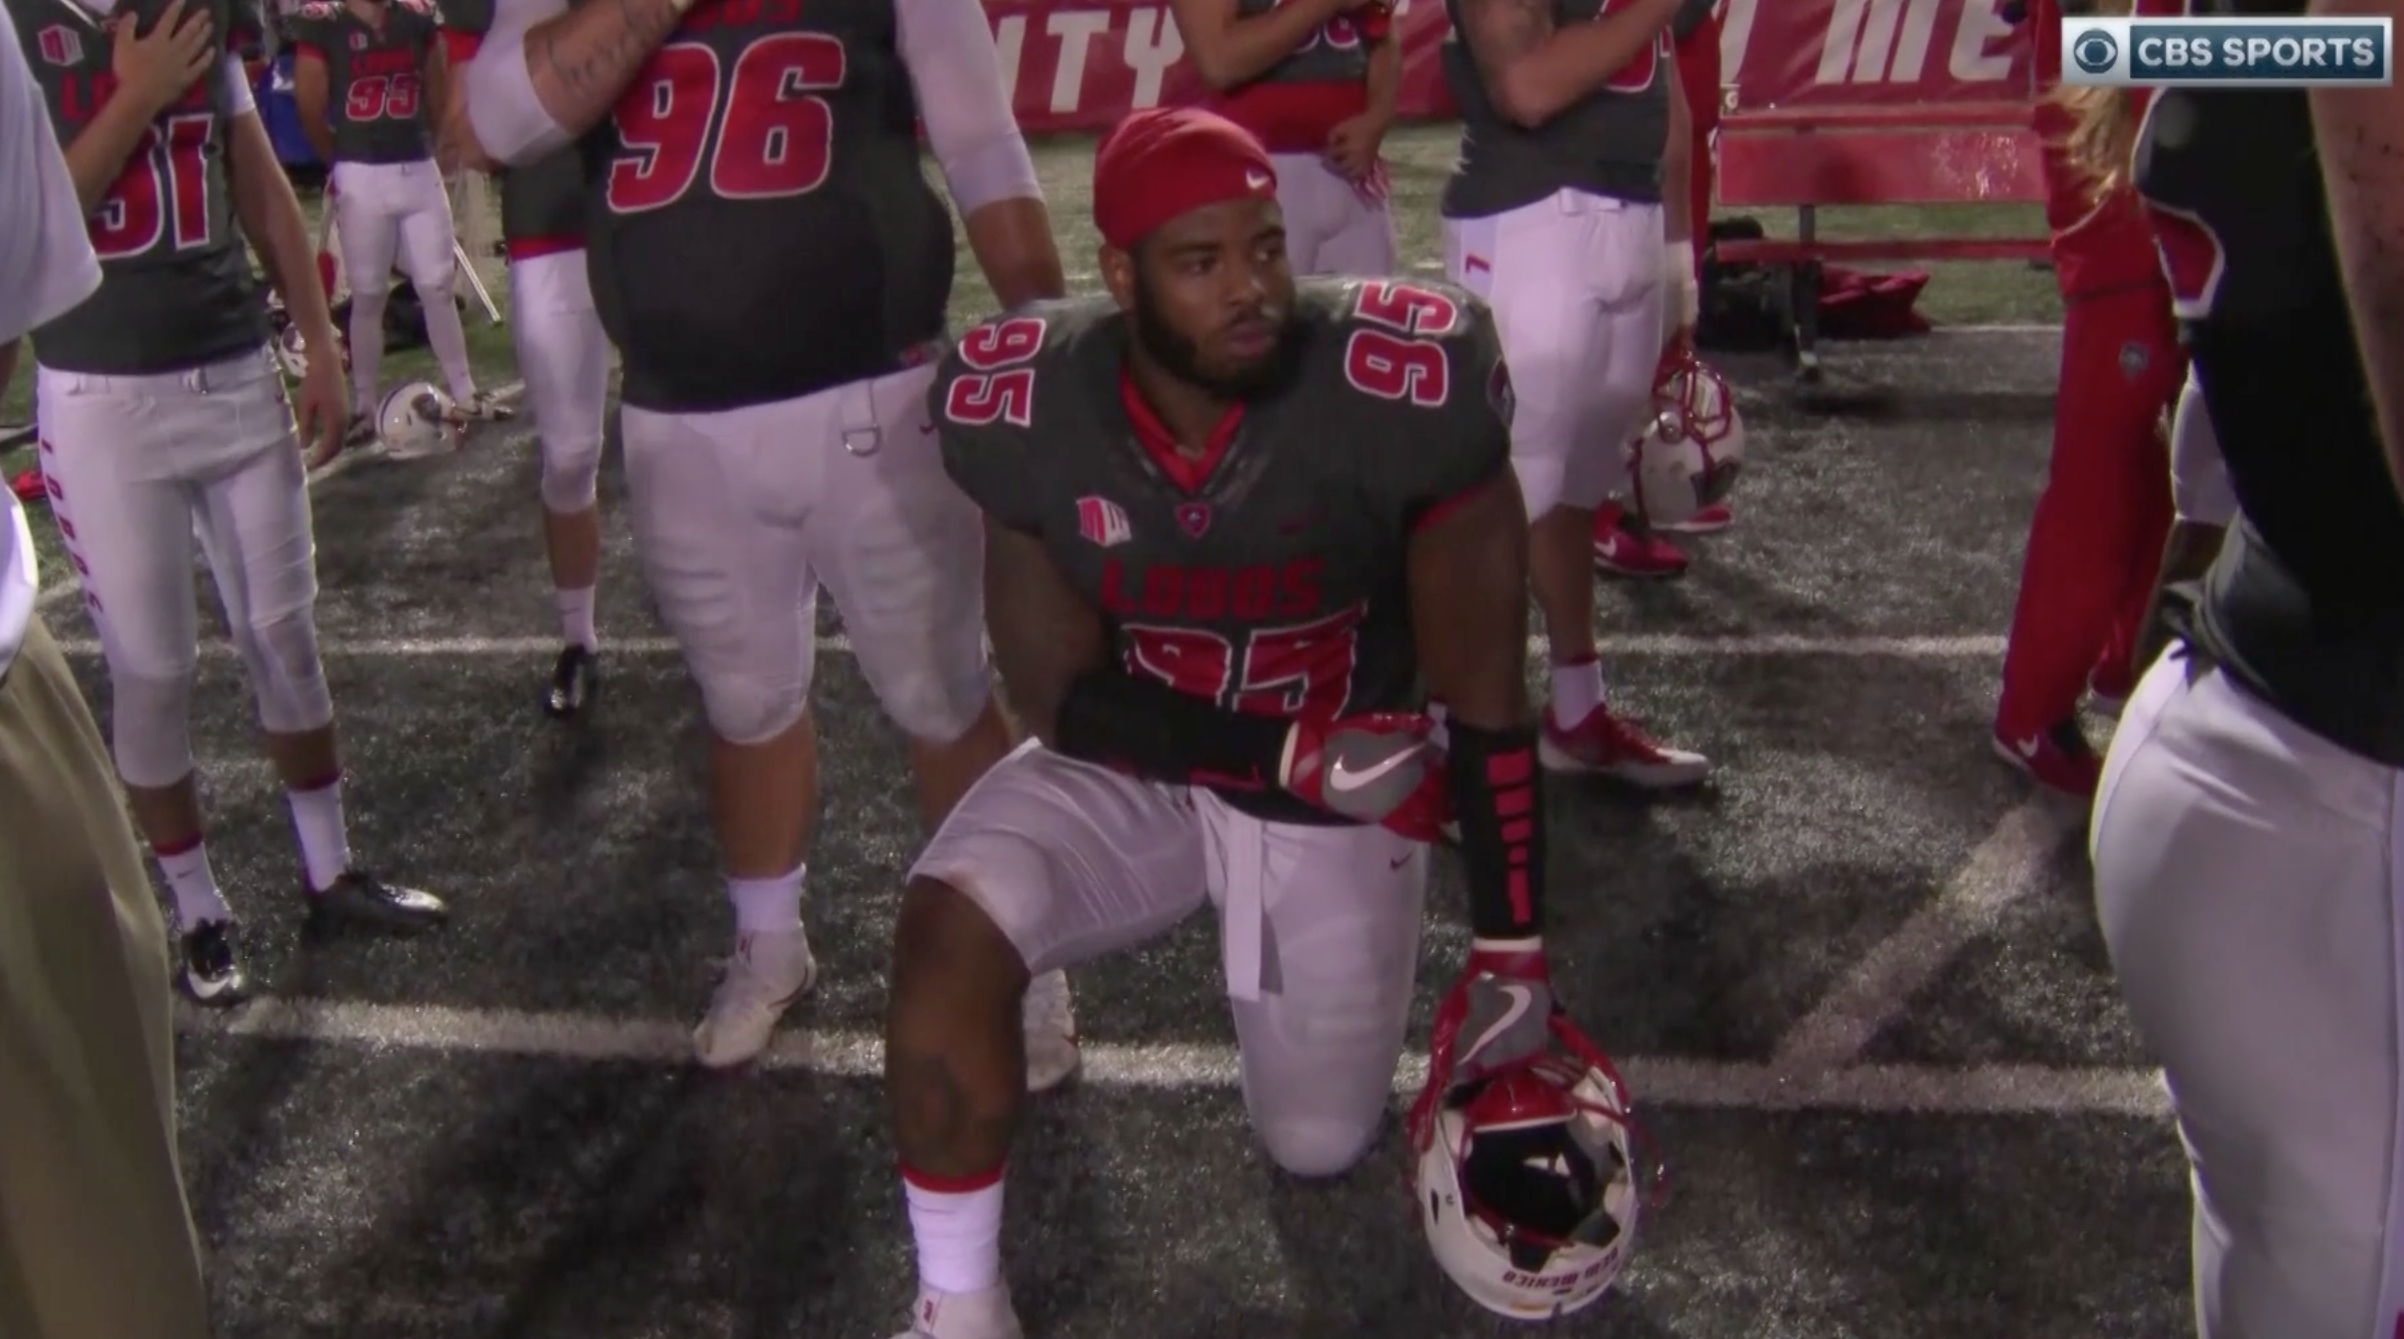 New Mexico players first college athletes to kneel against racism